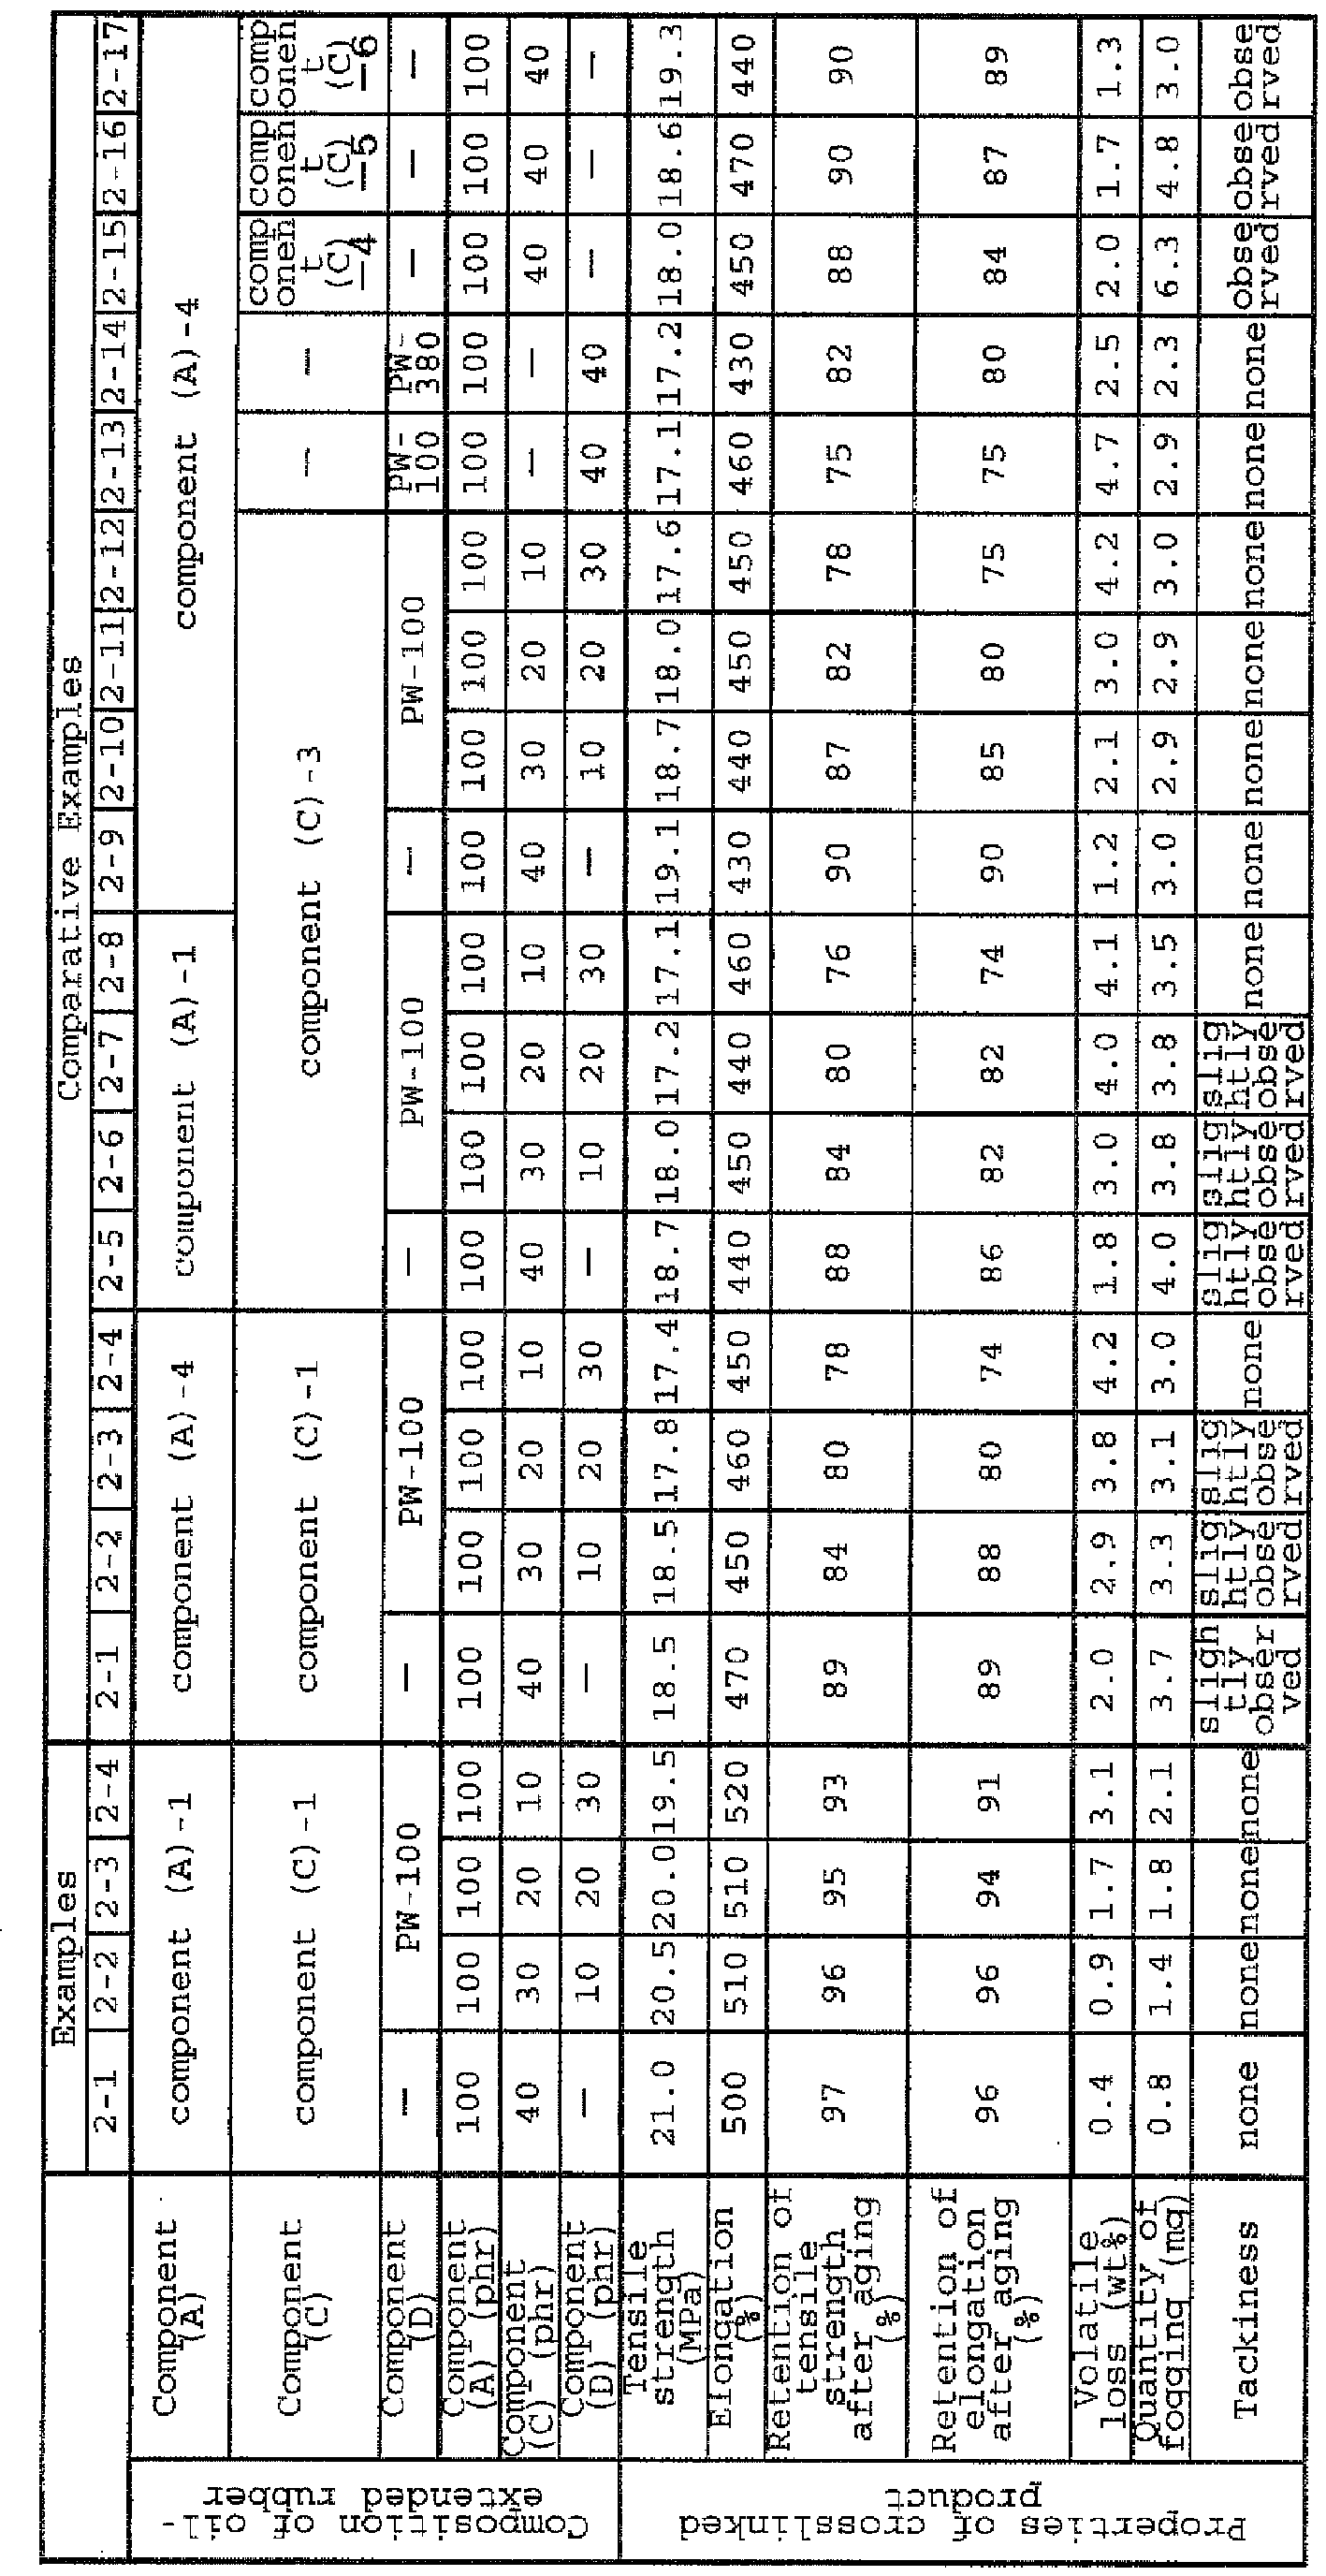 Ep2487202a1 Rubber Composition Crosslinked Product And Foamed Figure 718 Electronic Component Schematic Symbols Sheet 3 Of Imgb0056